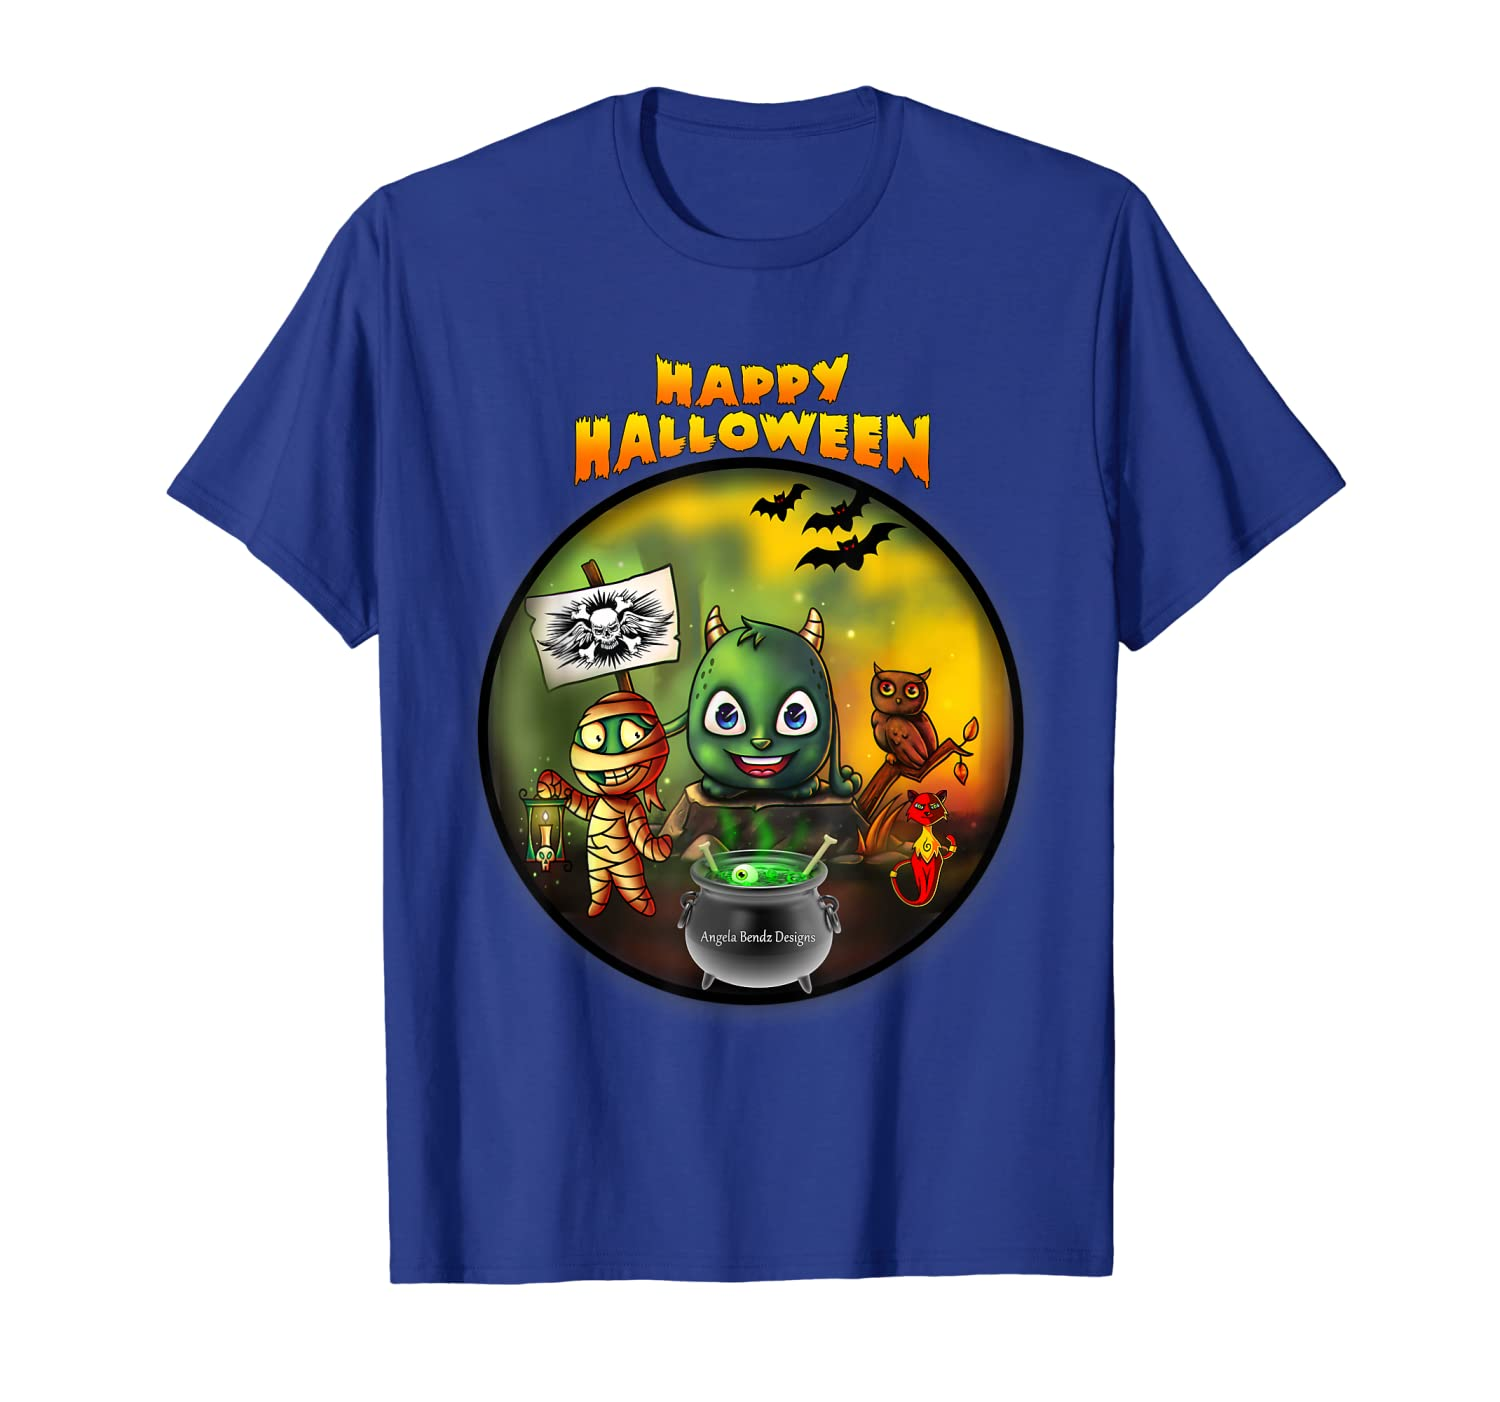 3a8f0e65 Amazon.com: Halloween T-Shirts - Scary & Funny Halloween Costume T-Shirt:  Clothing